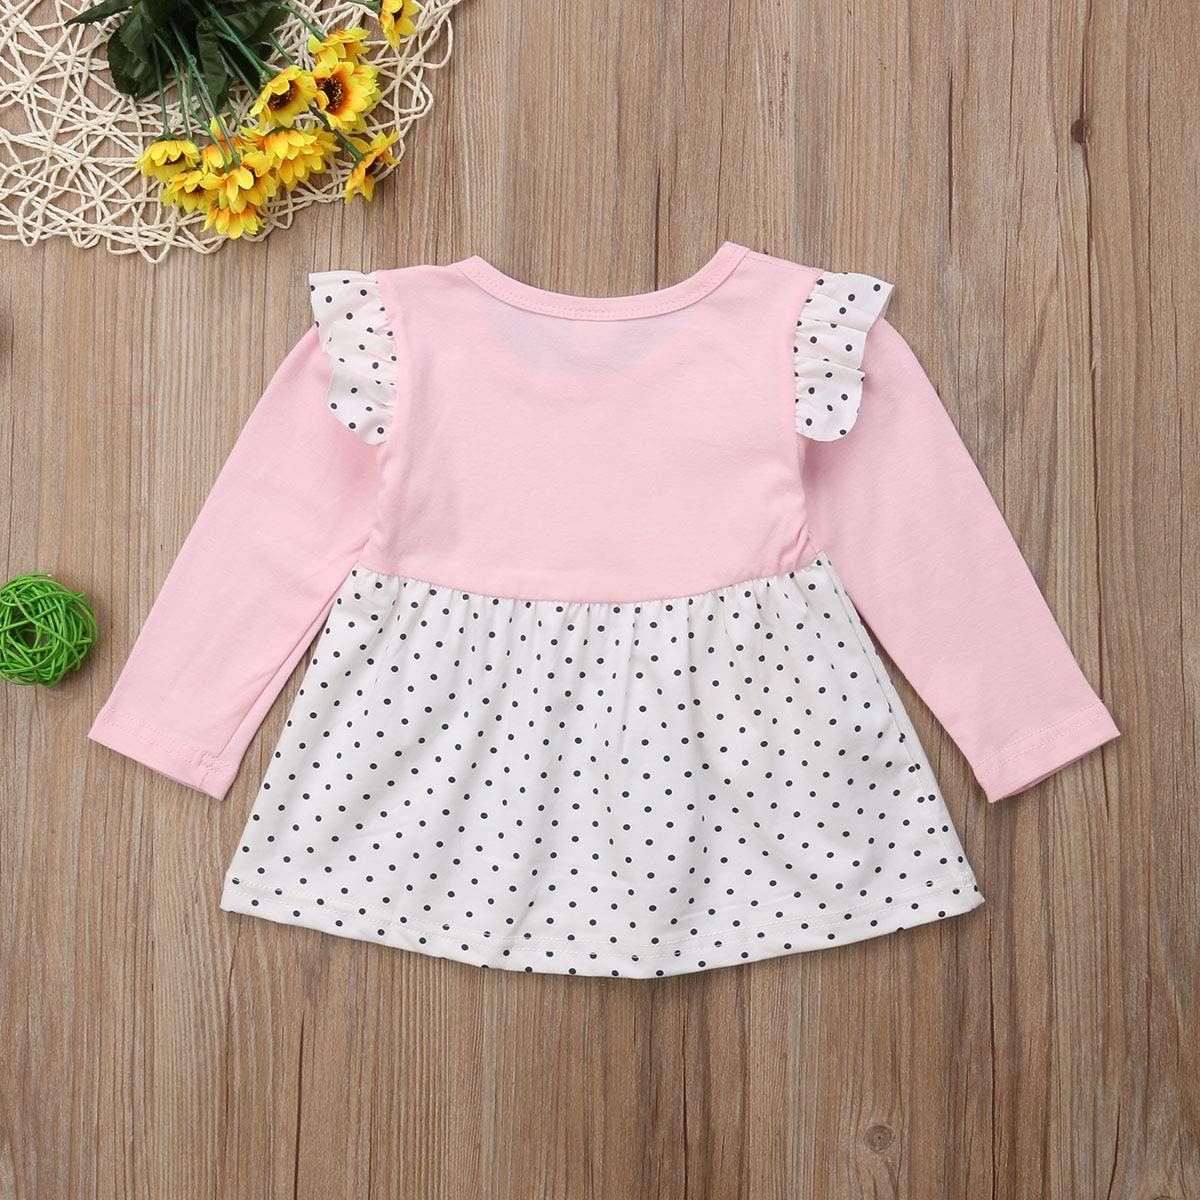 Infant Toddler Baby Girl Long Sleeve Dress Strawberry Polka Dot Lace Casual Fall Winter Dress